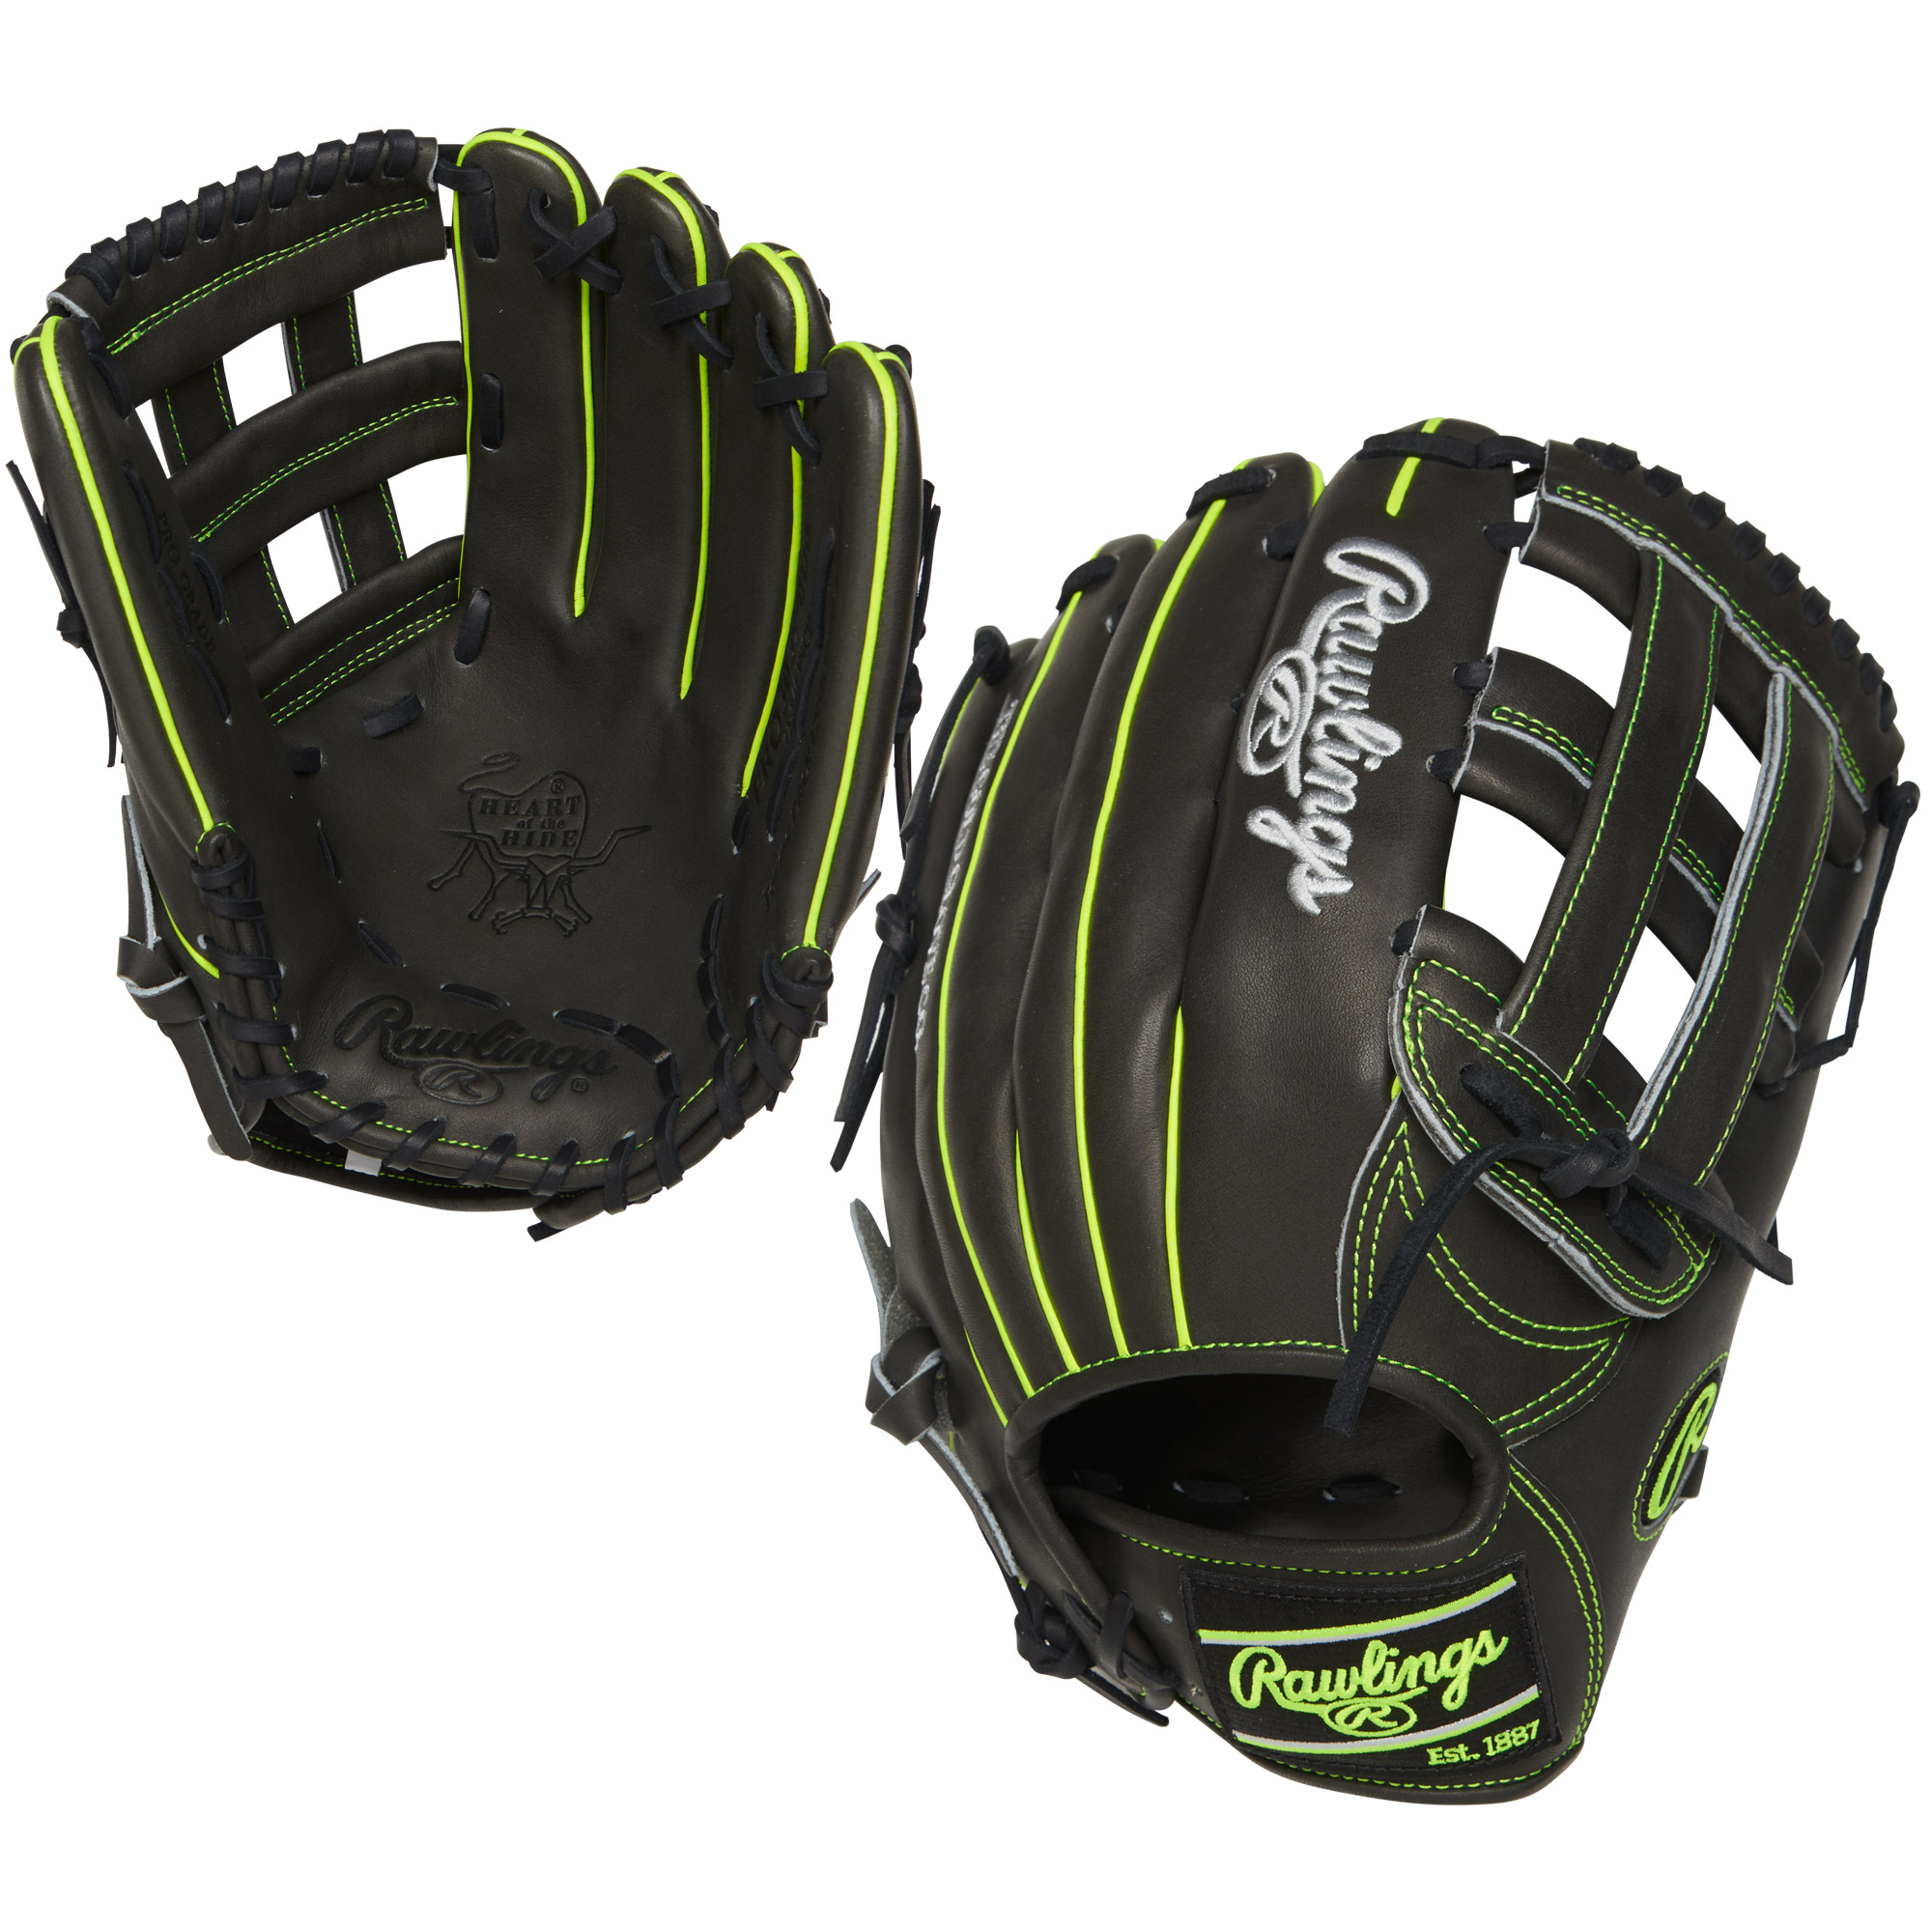 "Rawlings 12.75"" Heart of the Hide Series Baseball Glove, Right Hand Throw"